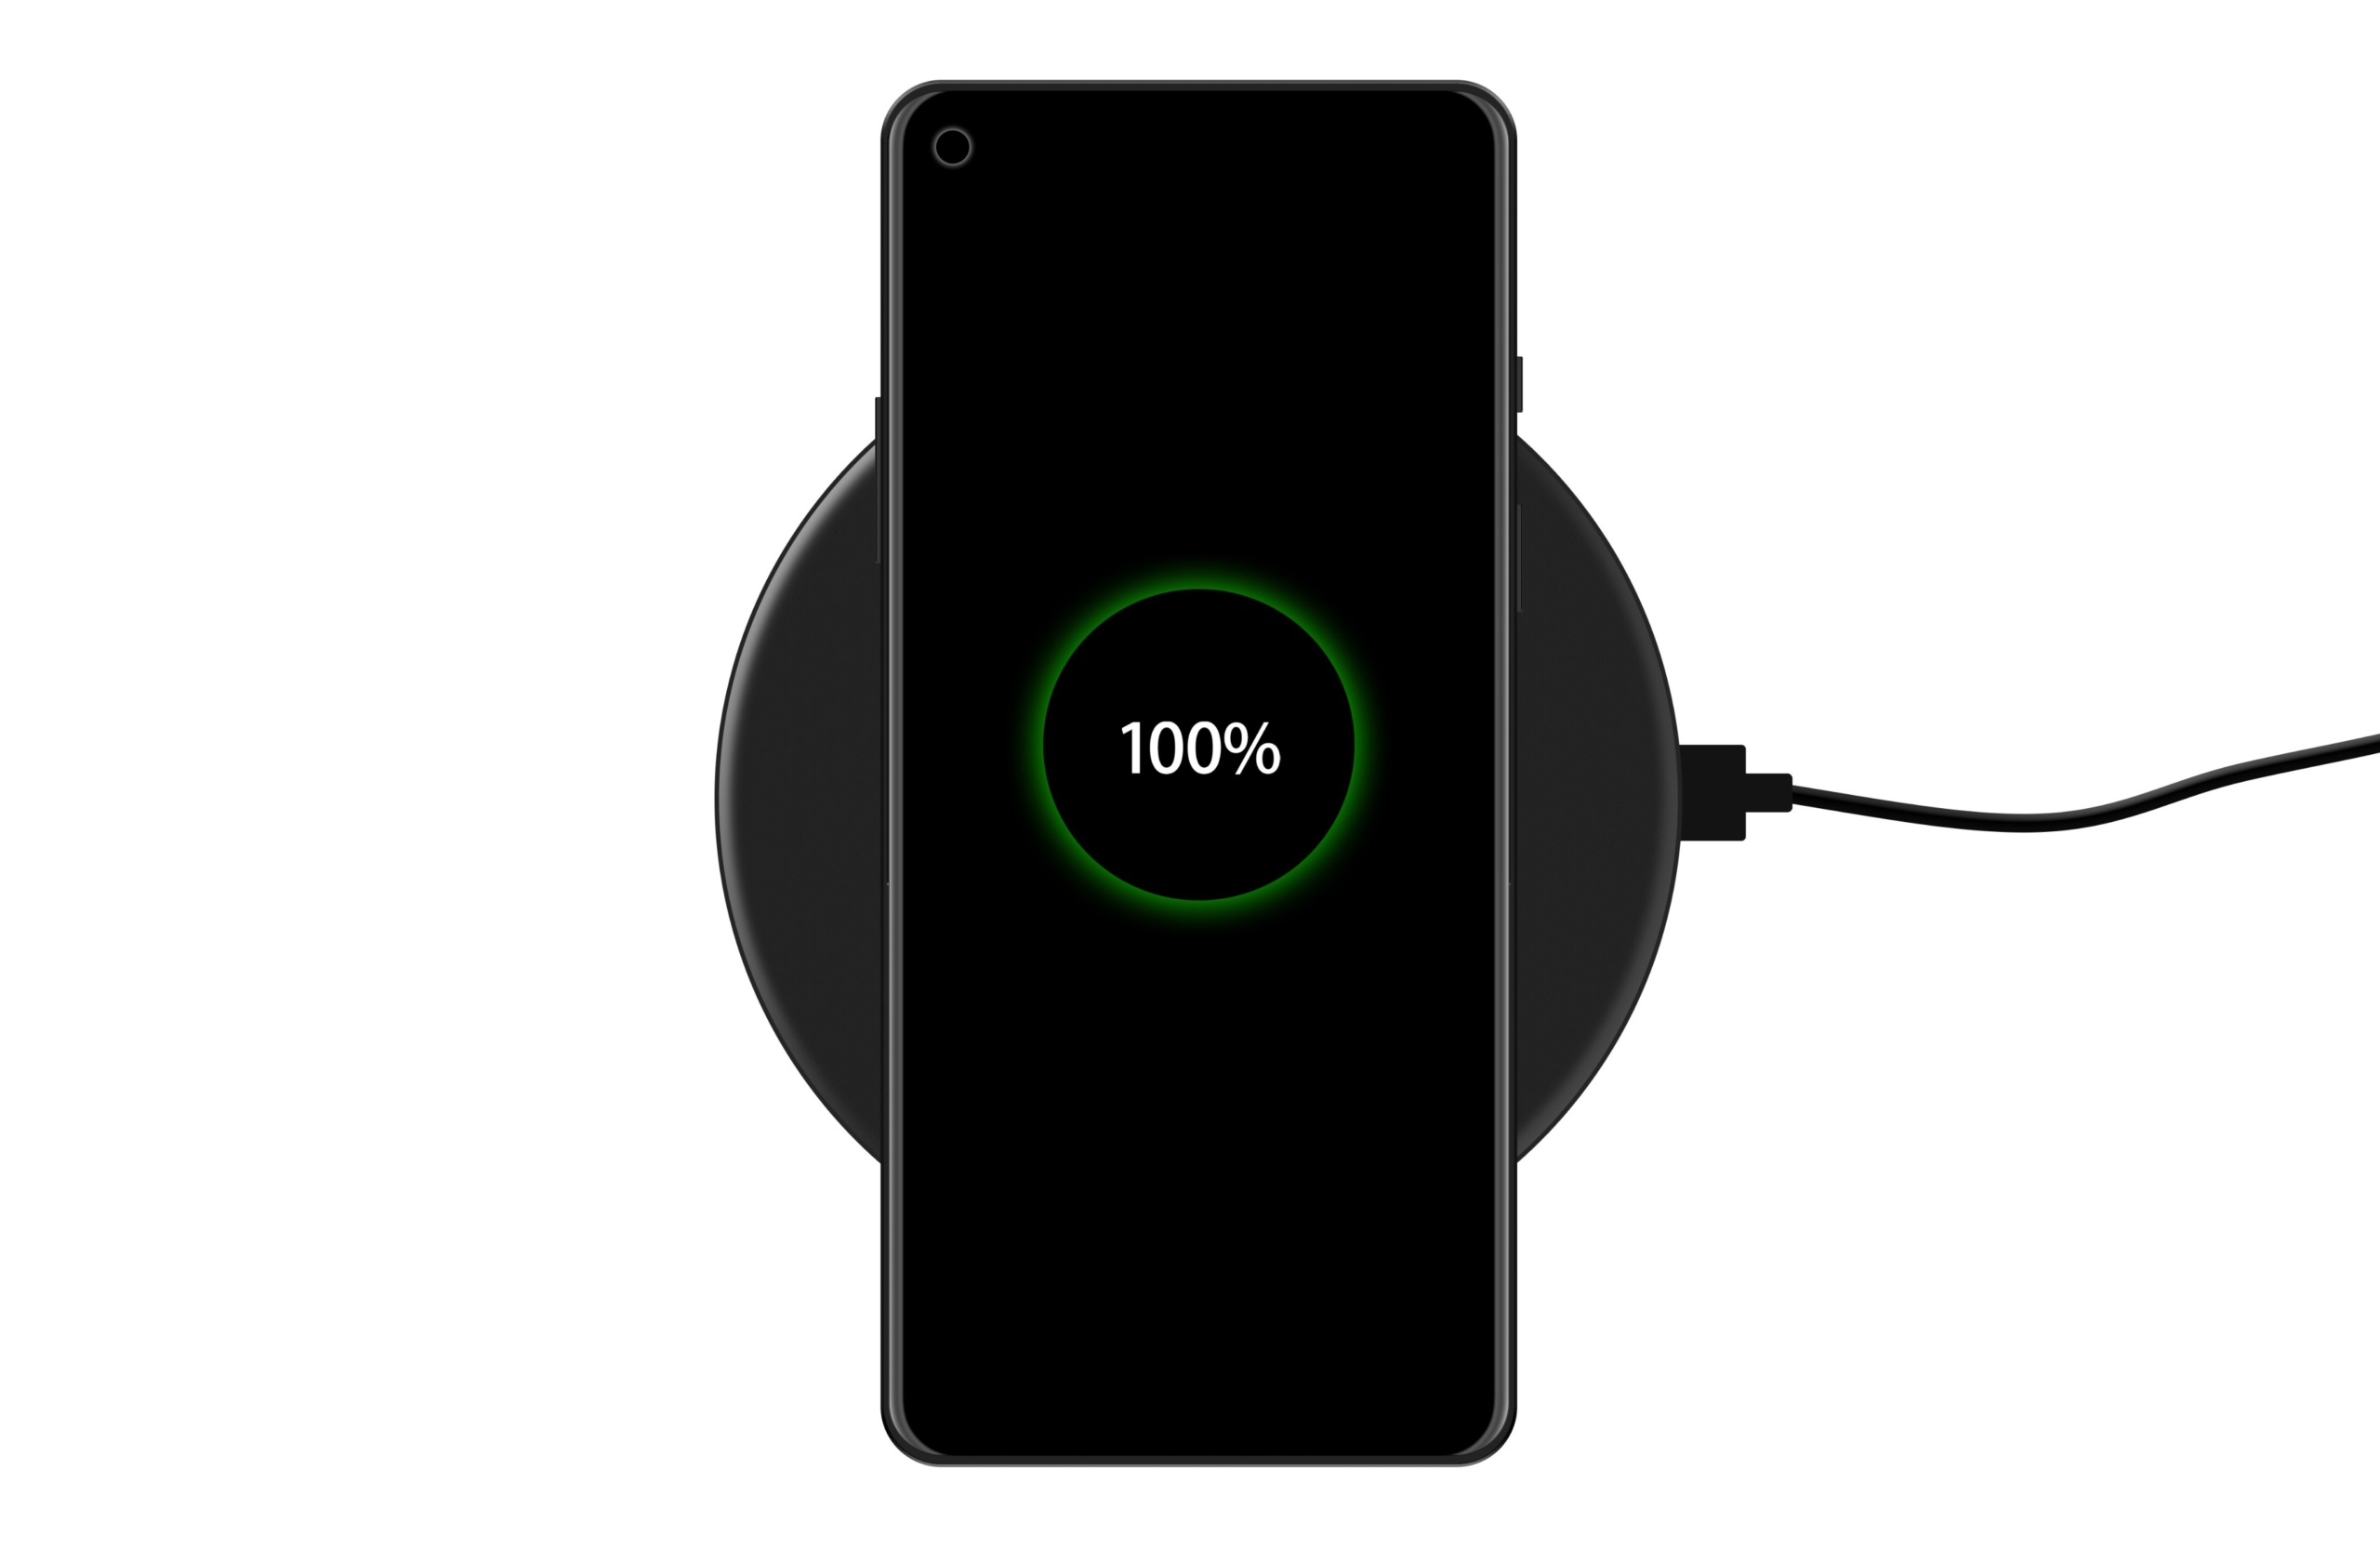 OnePlus 8 Pro rumored to come with wireless charging feature